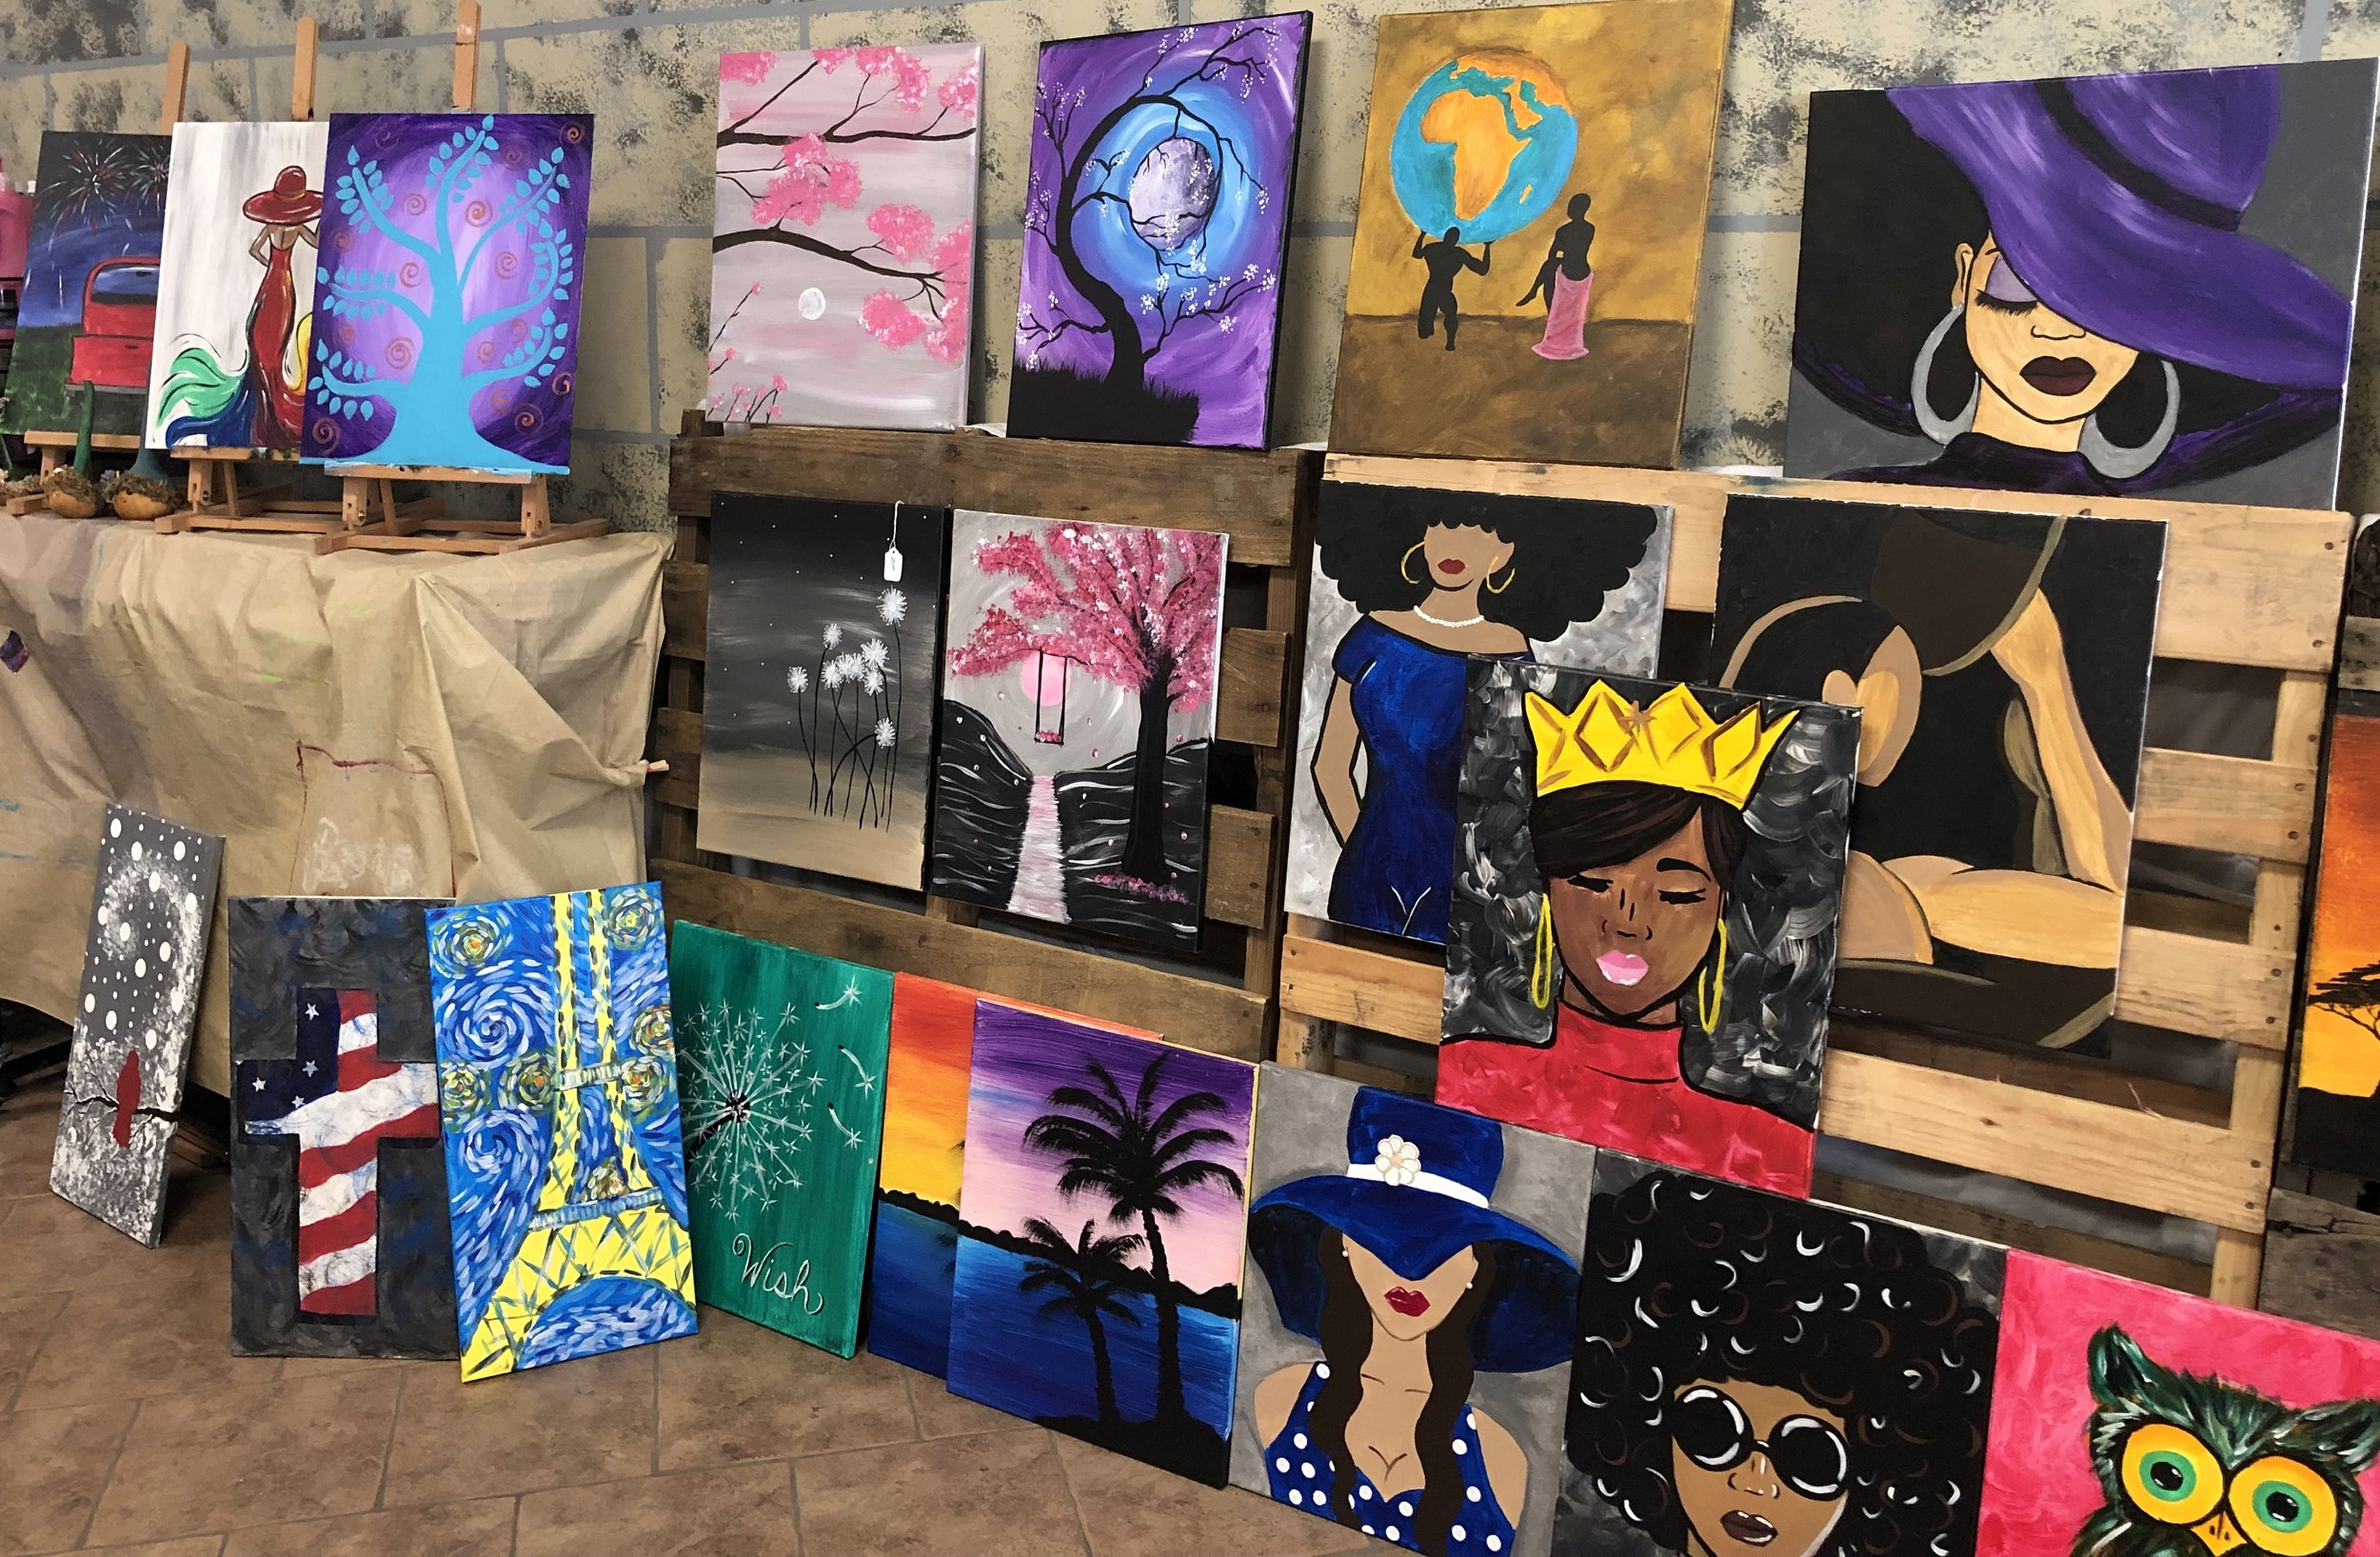 $25 - Painting created for classes are now available to purchase.